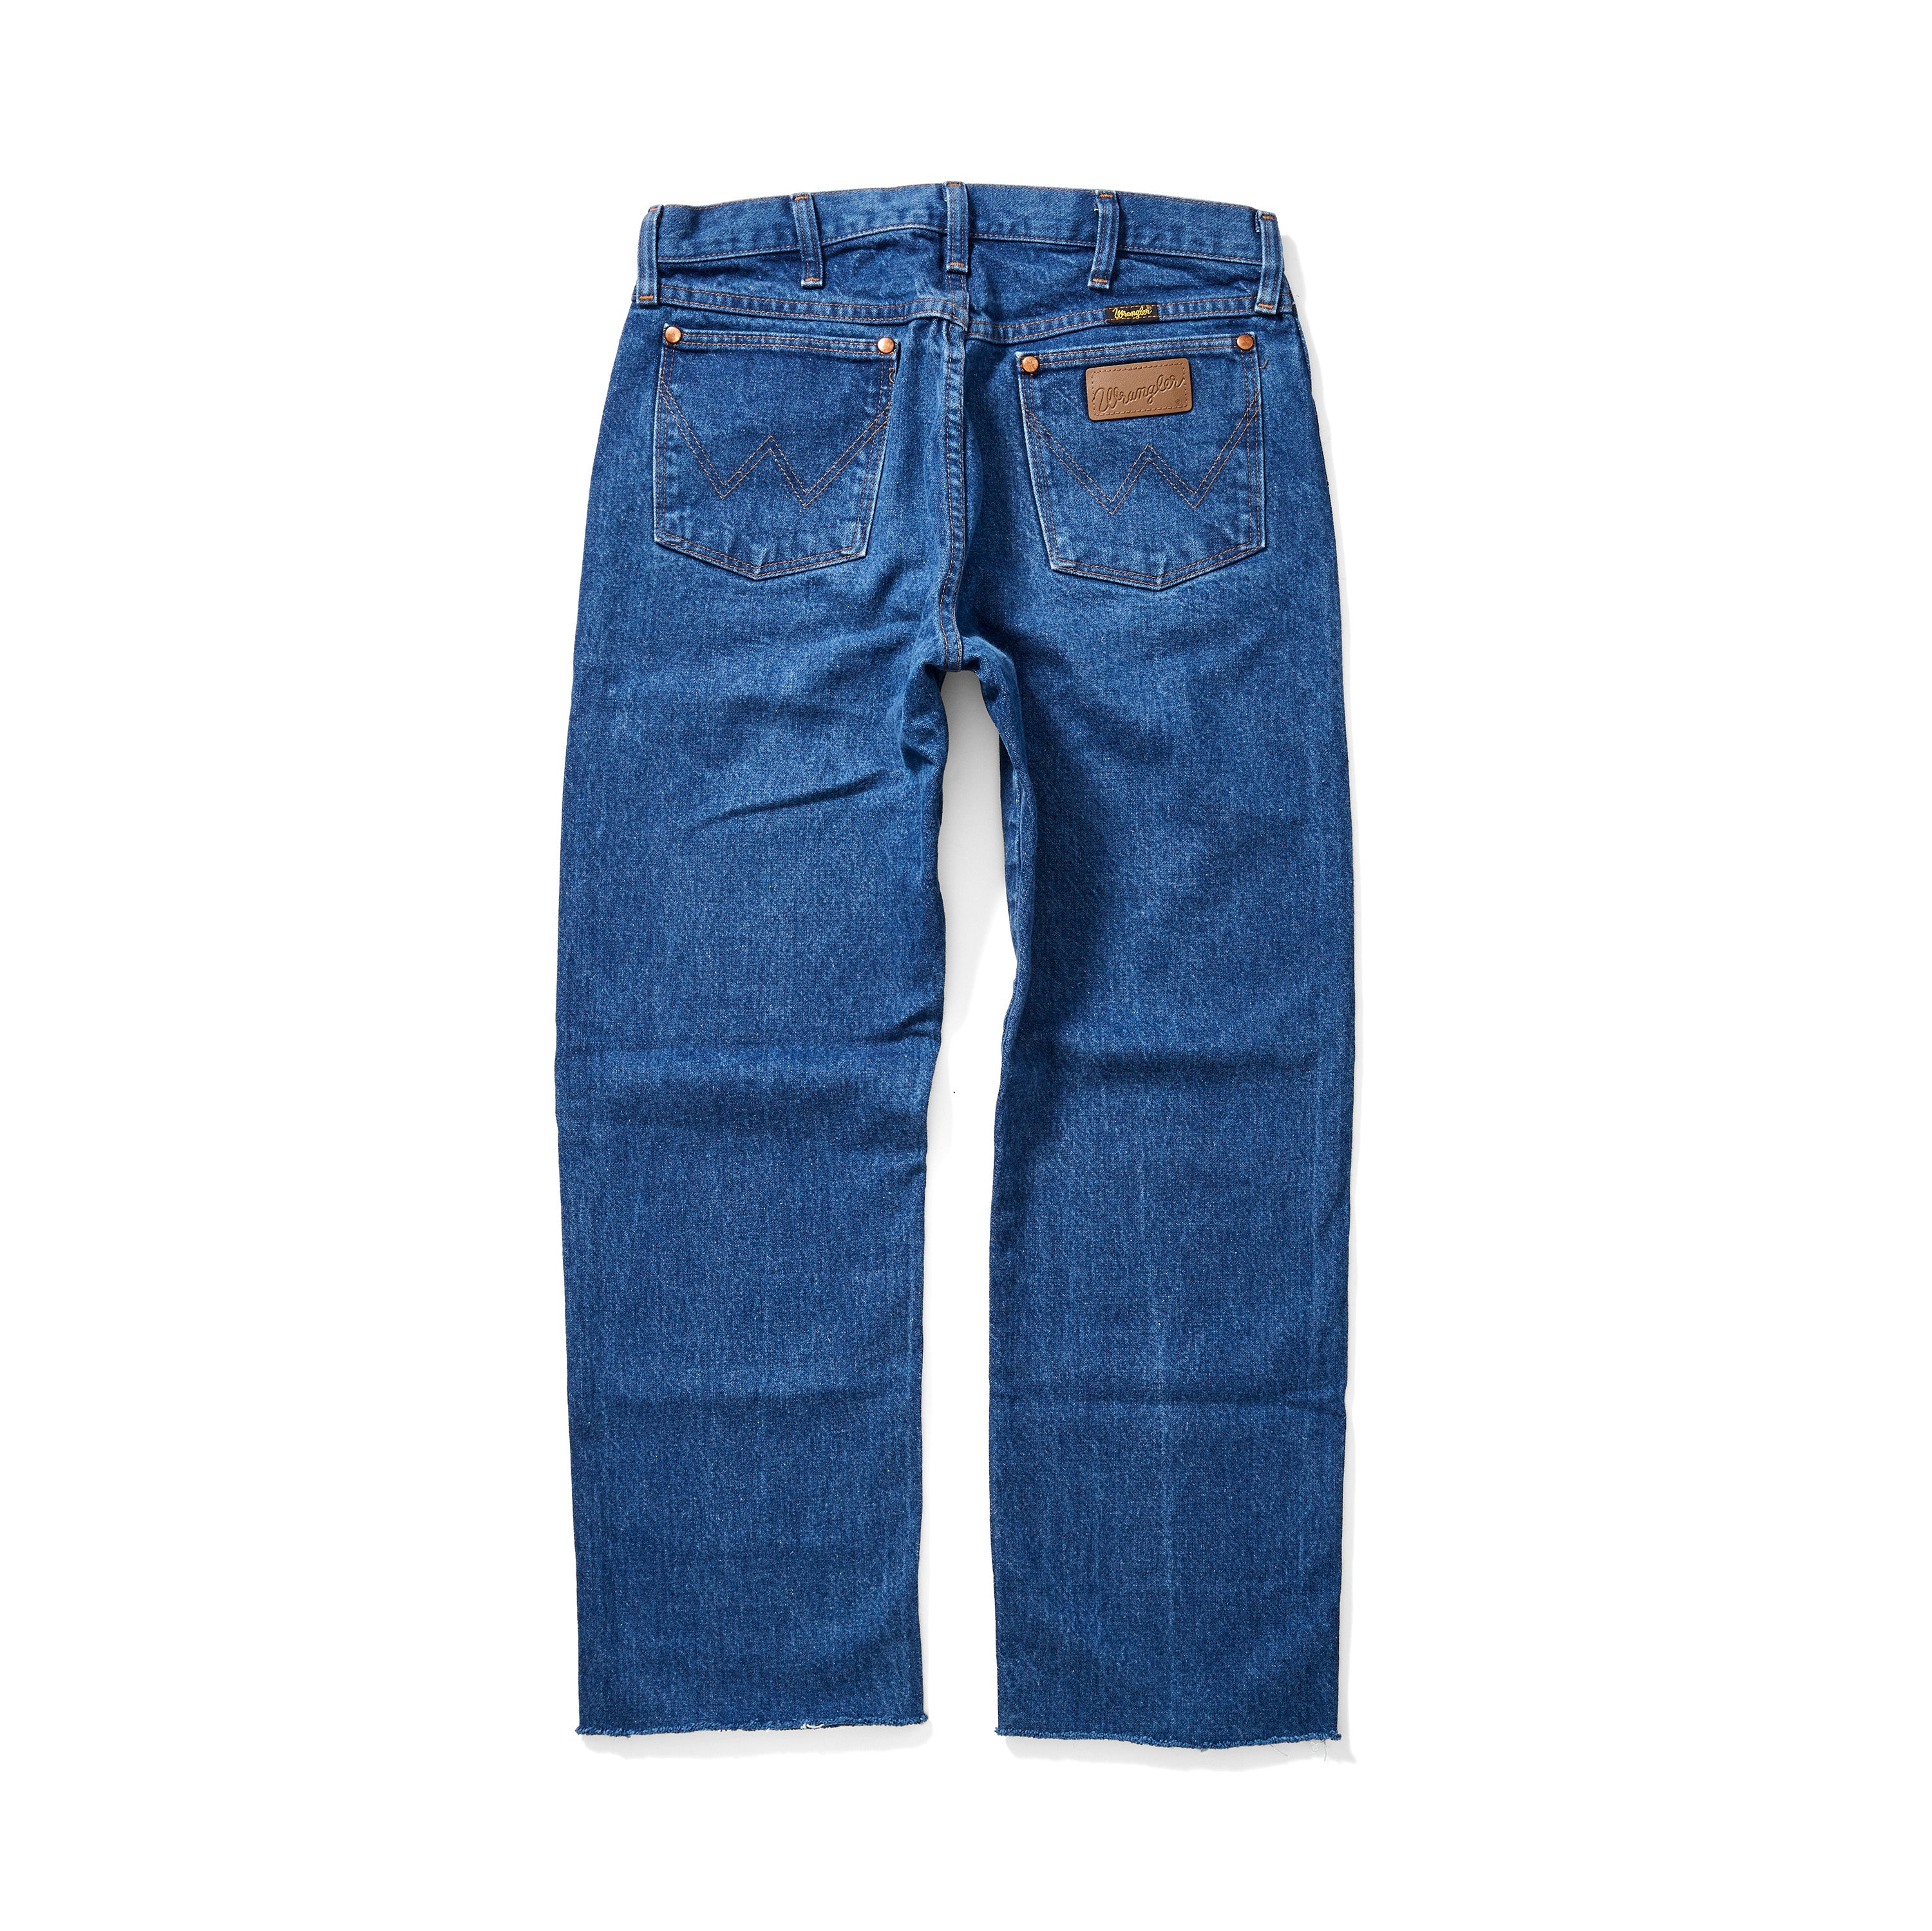 Vintage Wrangler Jeans <br> Cropped Straight Fit - Size 30